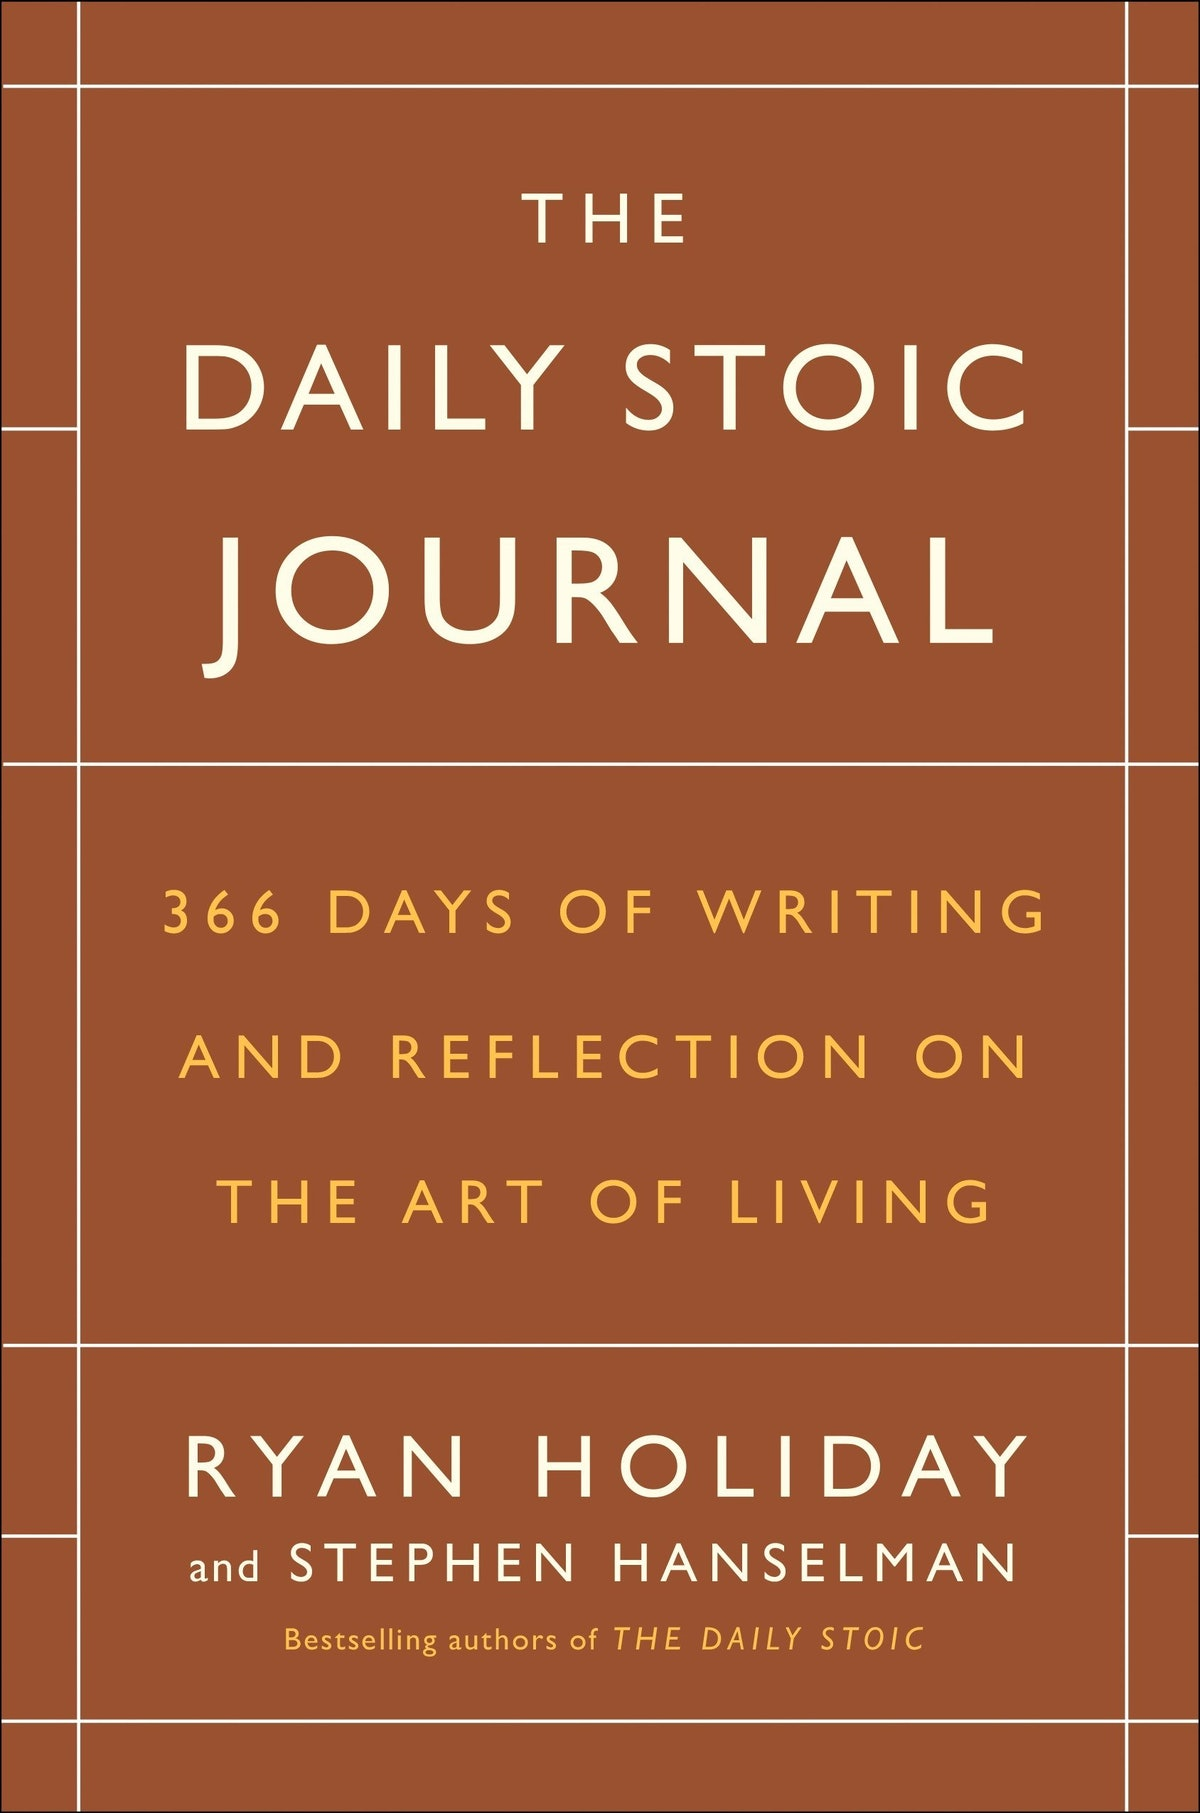 'The Daily Stoic Journal: 366 Days of Writing and Reflection on the Art of Living' by Ryan Holiday and Stephen Hanselman